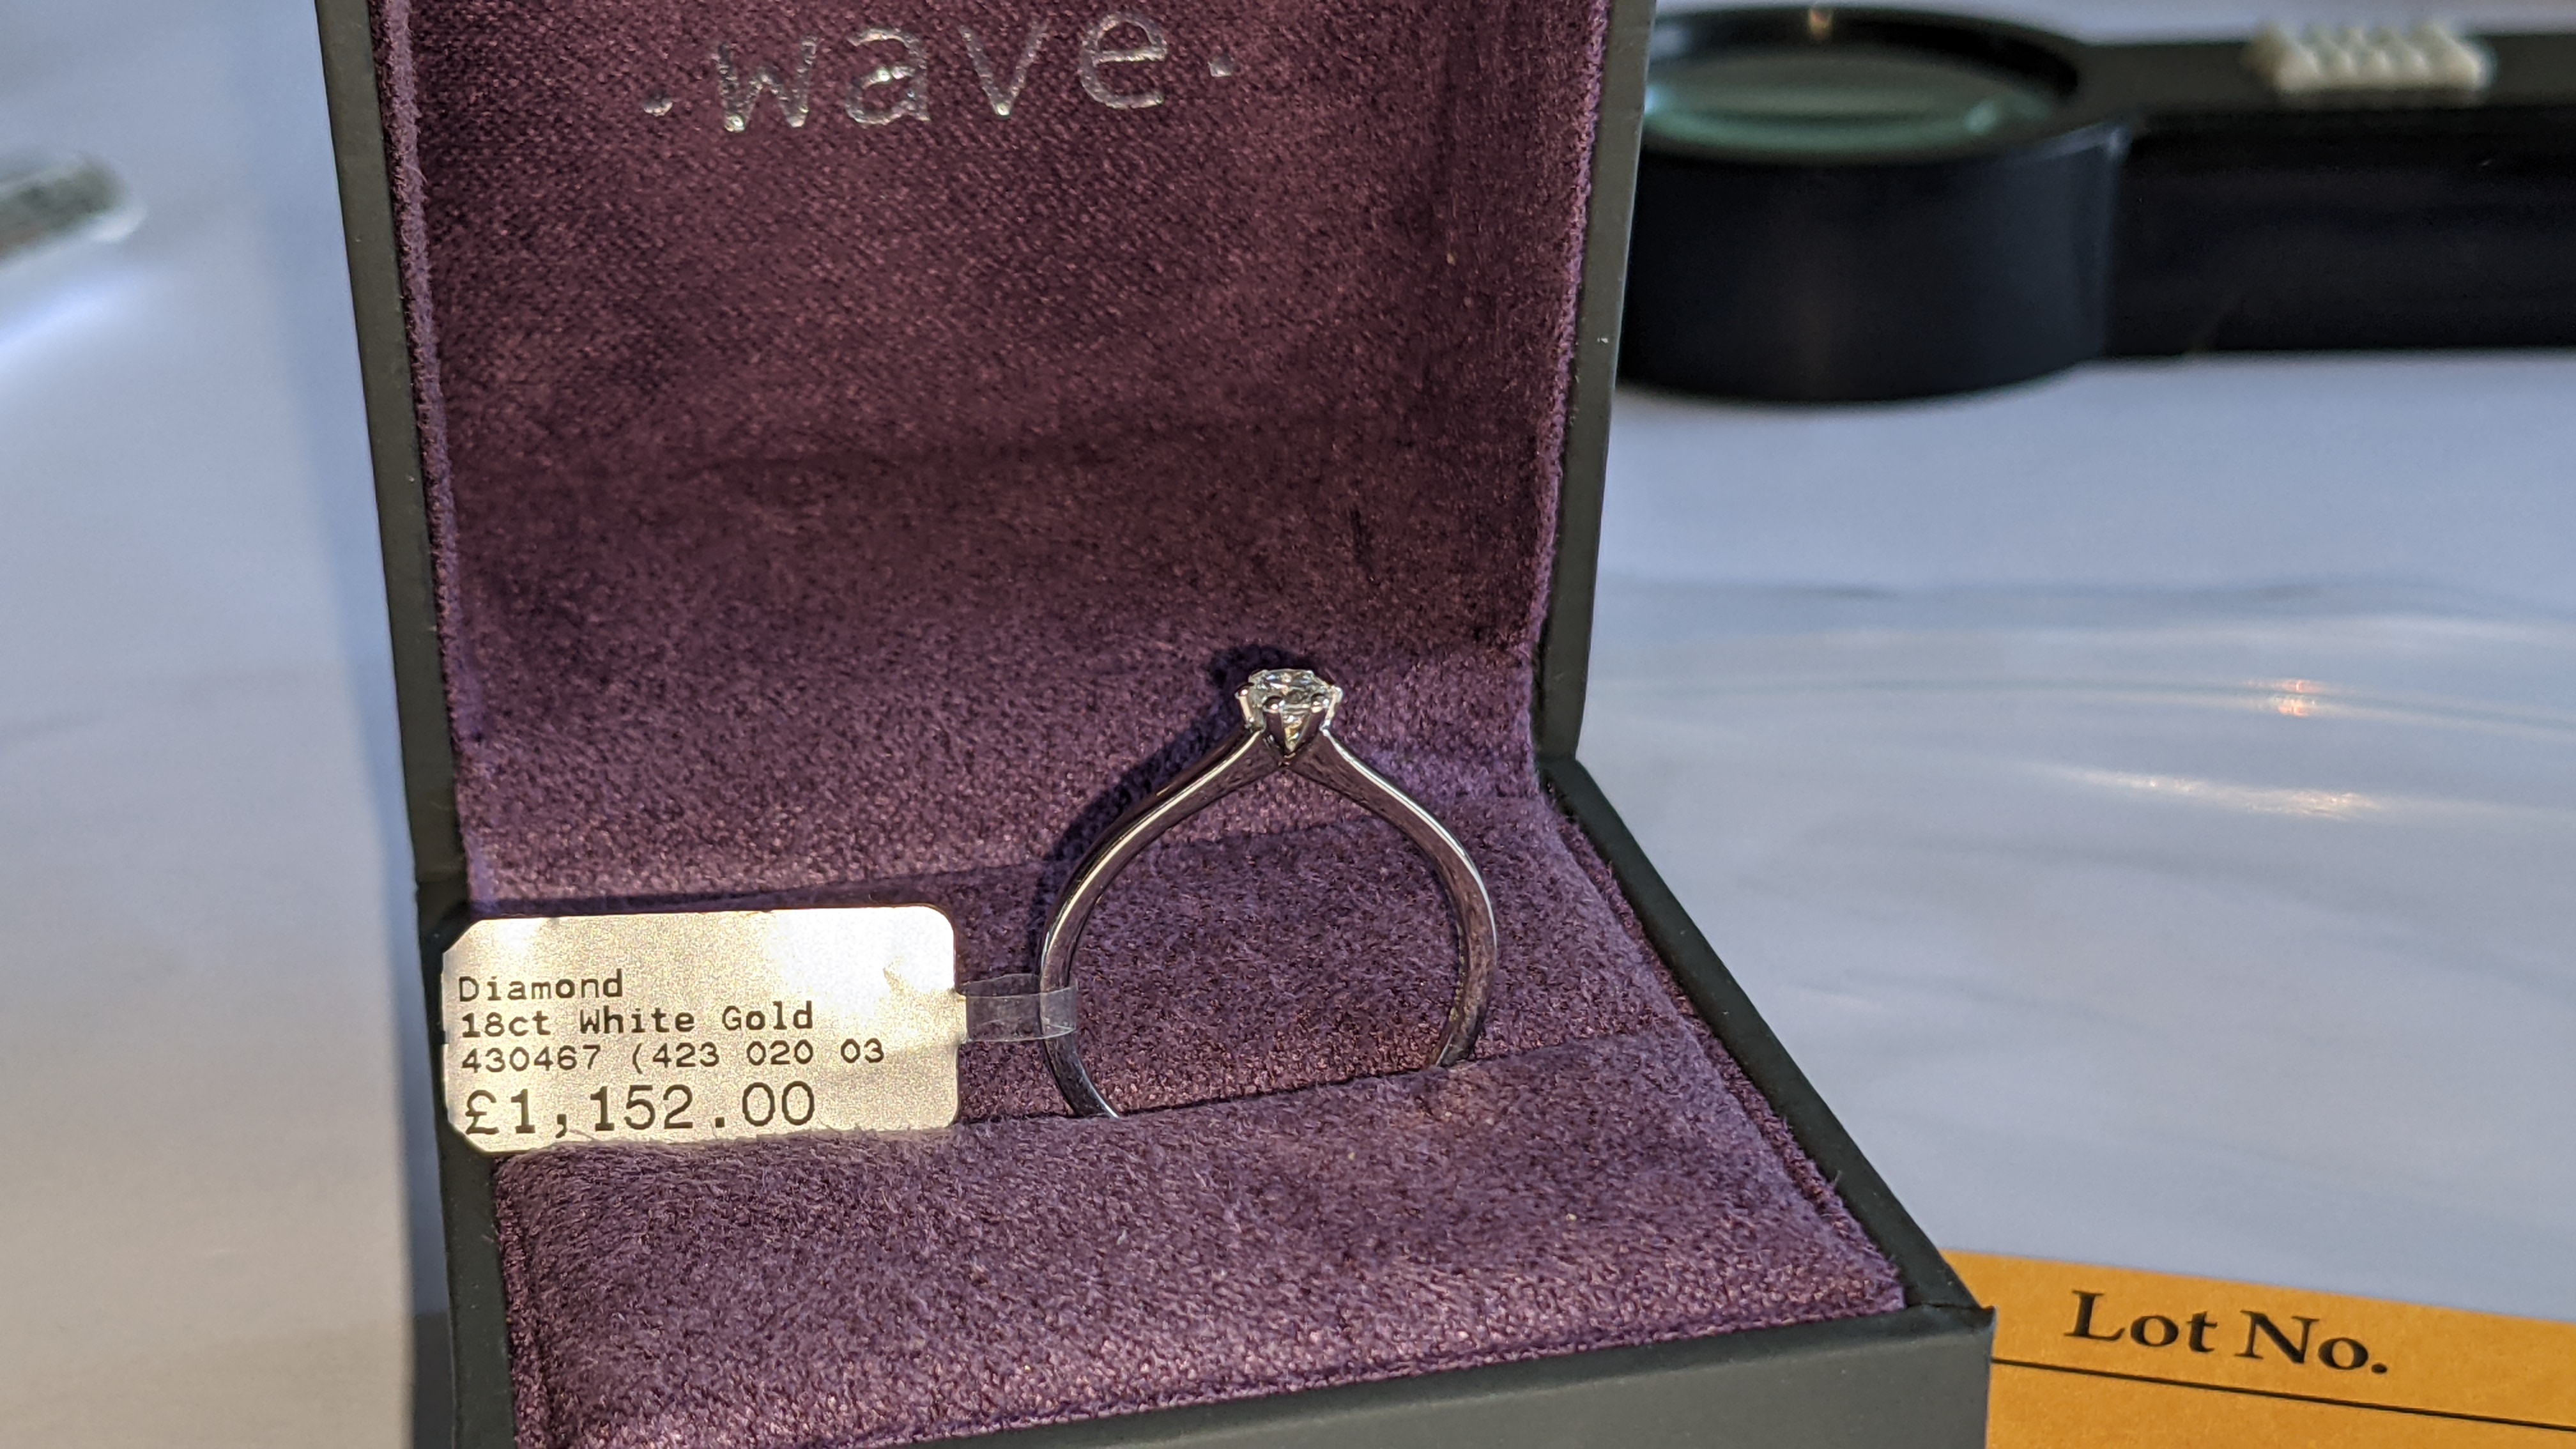 18ct white gold ring with 0.20ct G/Si brilliant cut diamond RRP £1,152 - Image 4 of 16